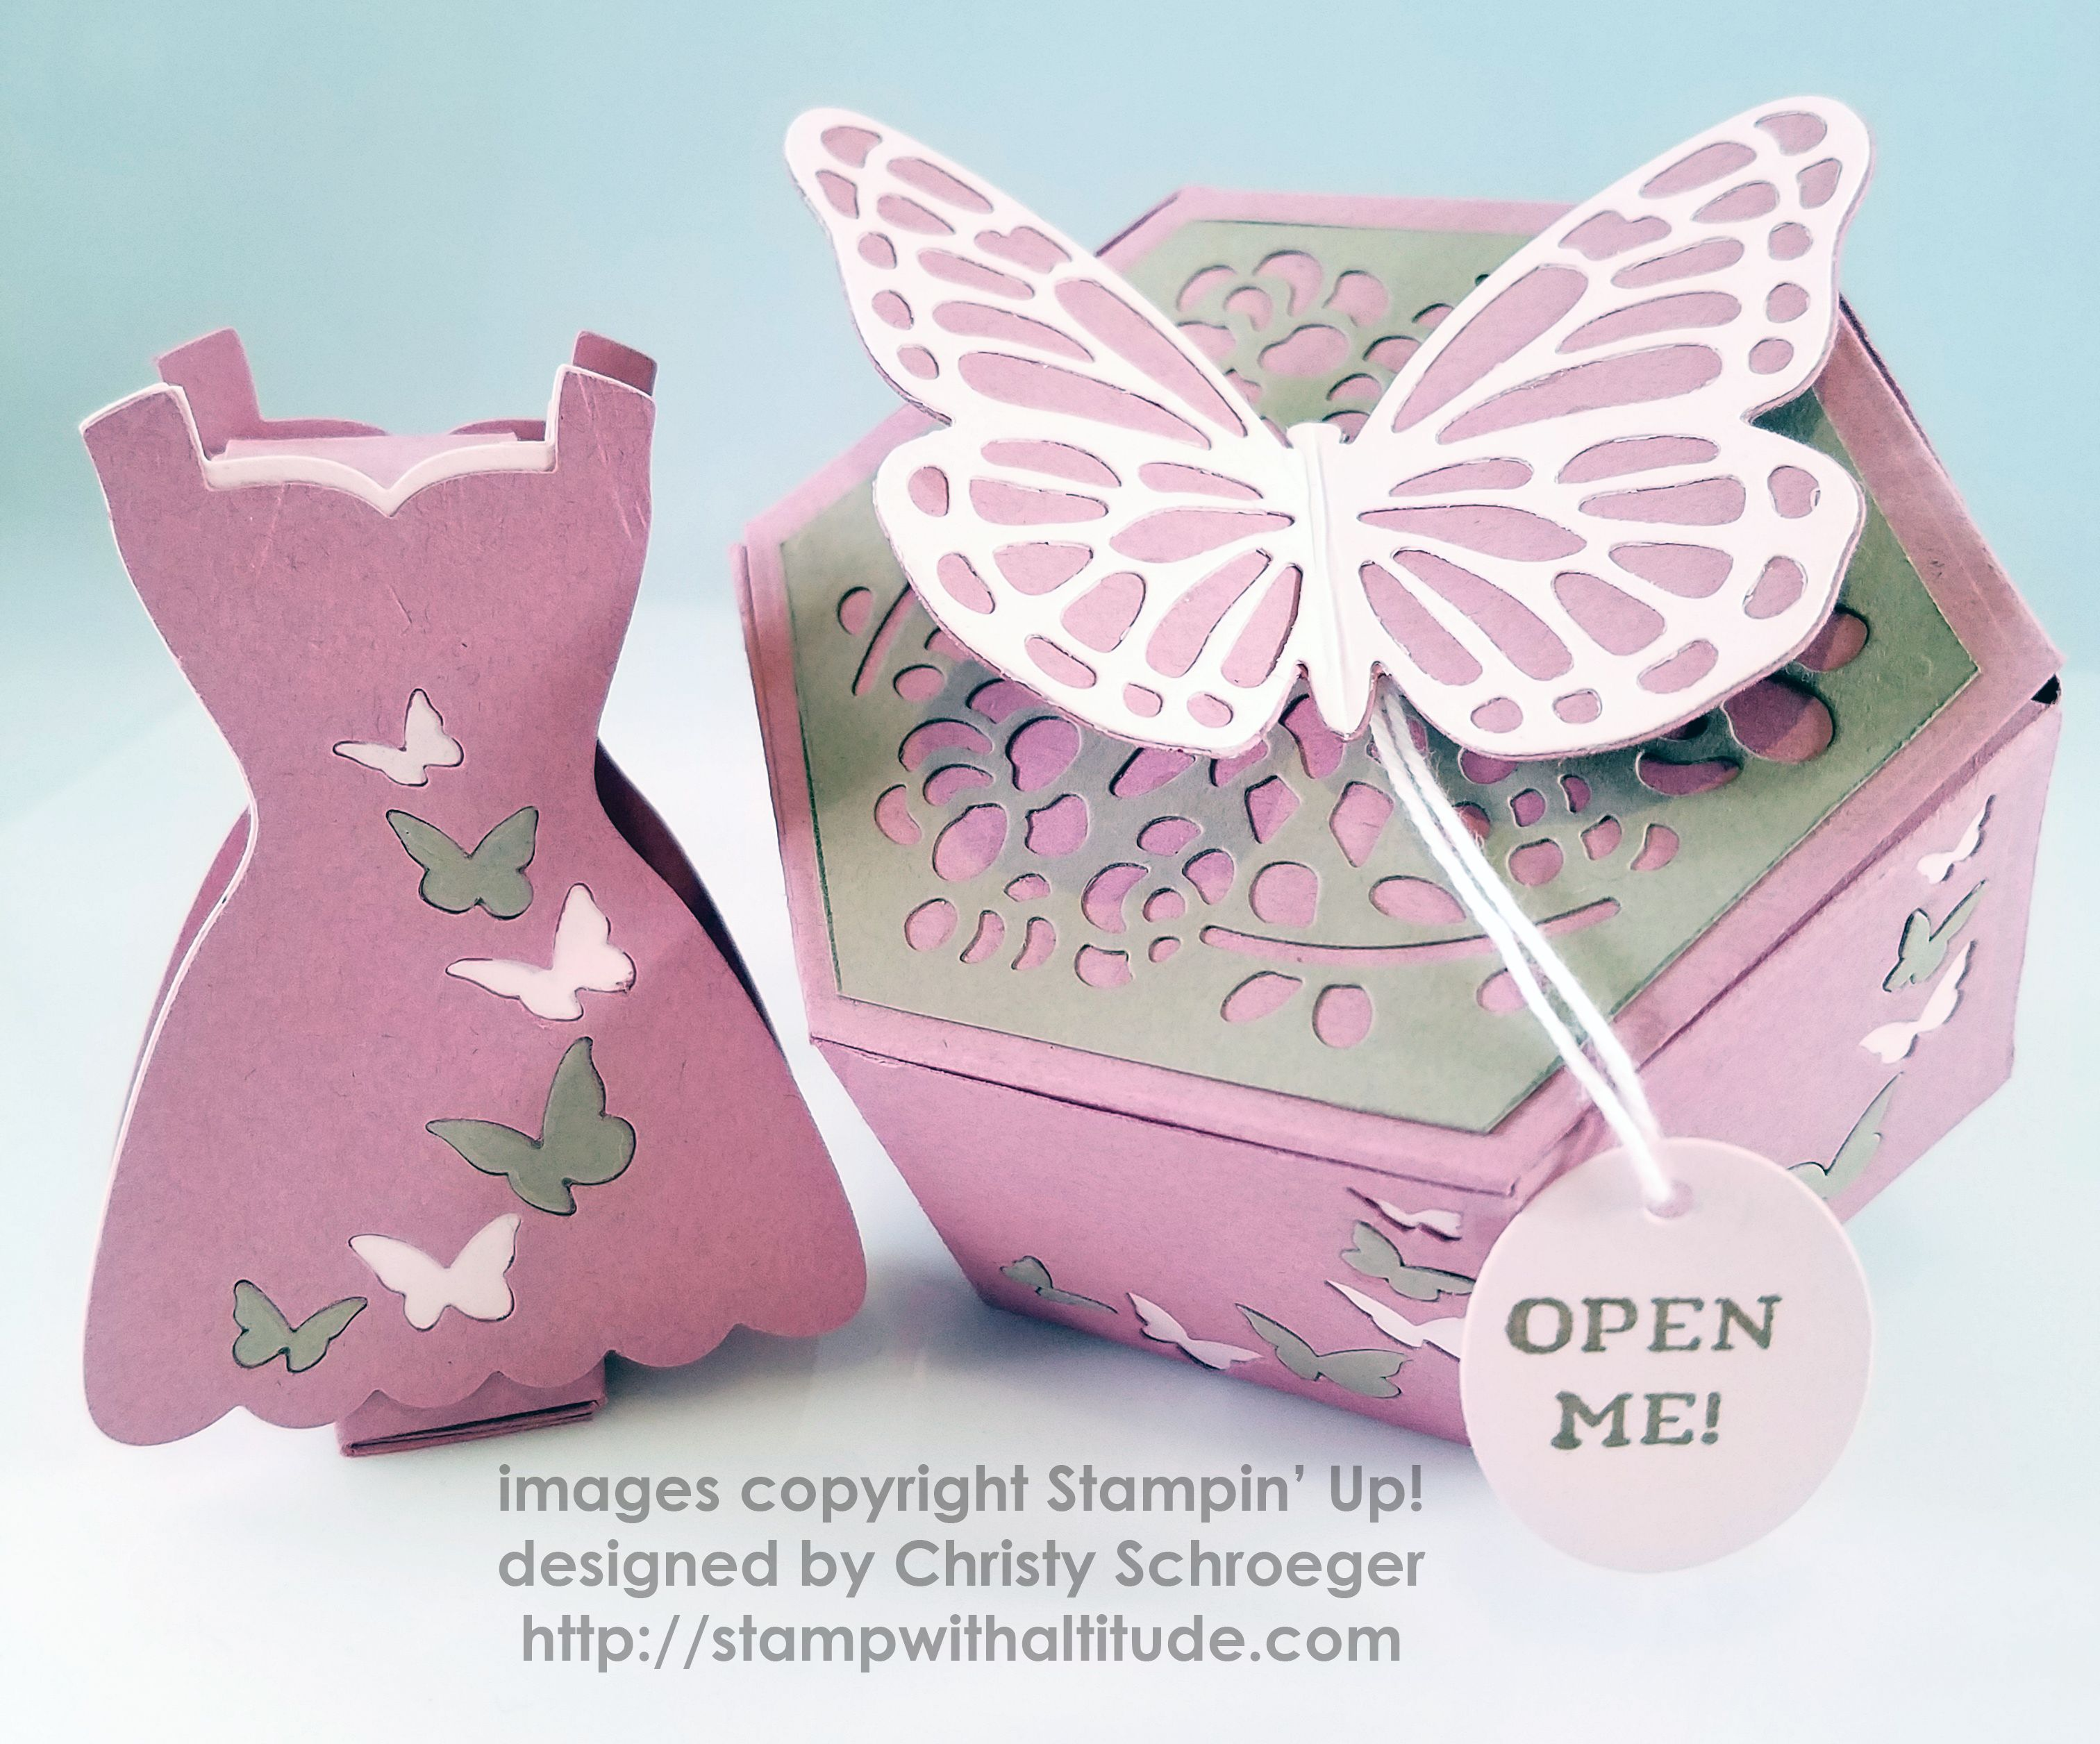 Window Shopping Bundle, Window Box Thinlits, Timeless tags, Bold Butterfly Framelits, Butterflies Thinlits by Stampin' Up! were used to make wedding favors.